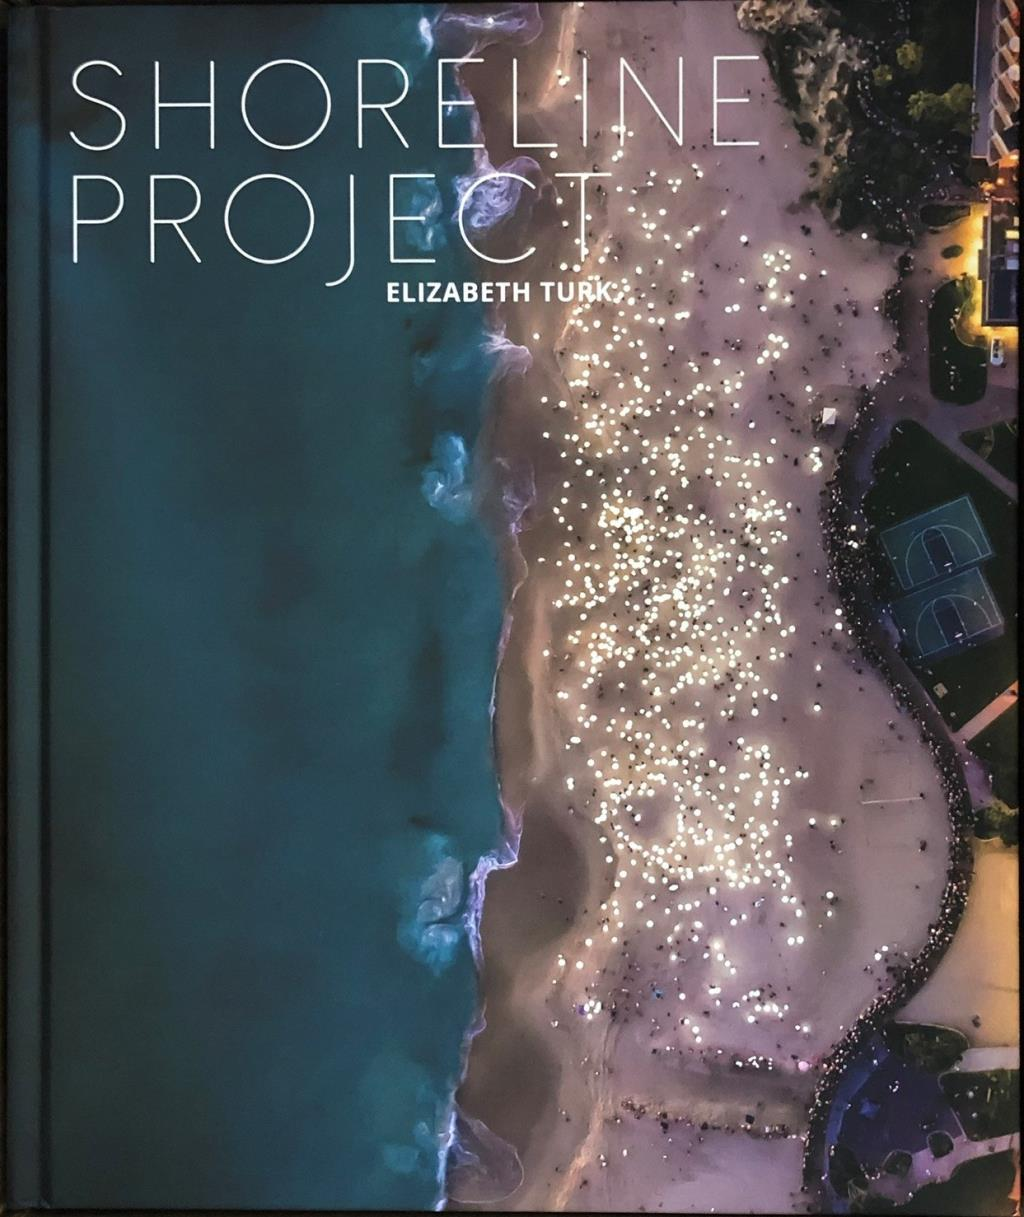 Shoreline Book Cover